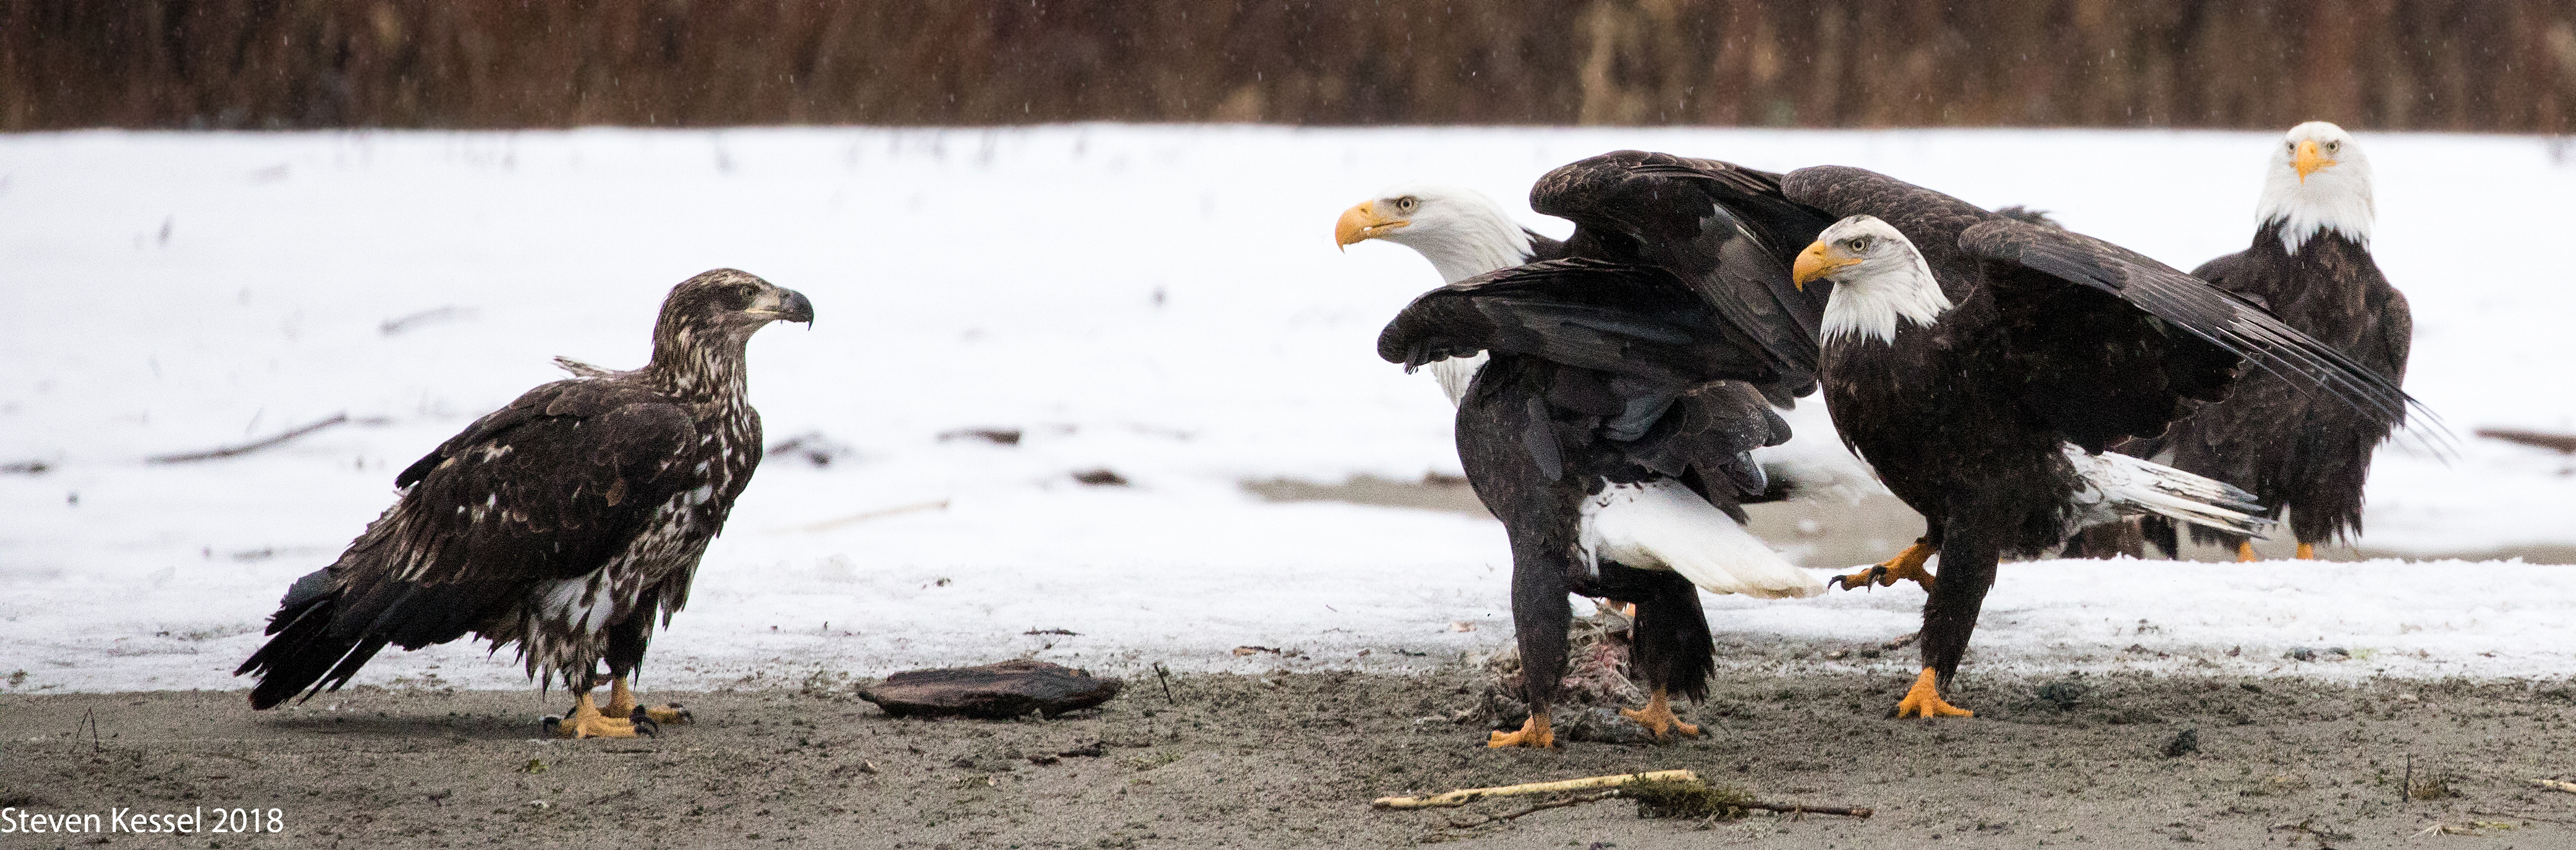 Intimidating pictures of eagles